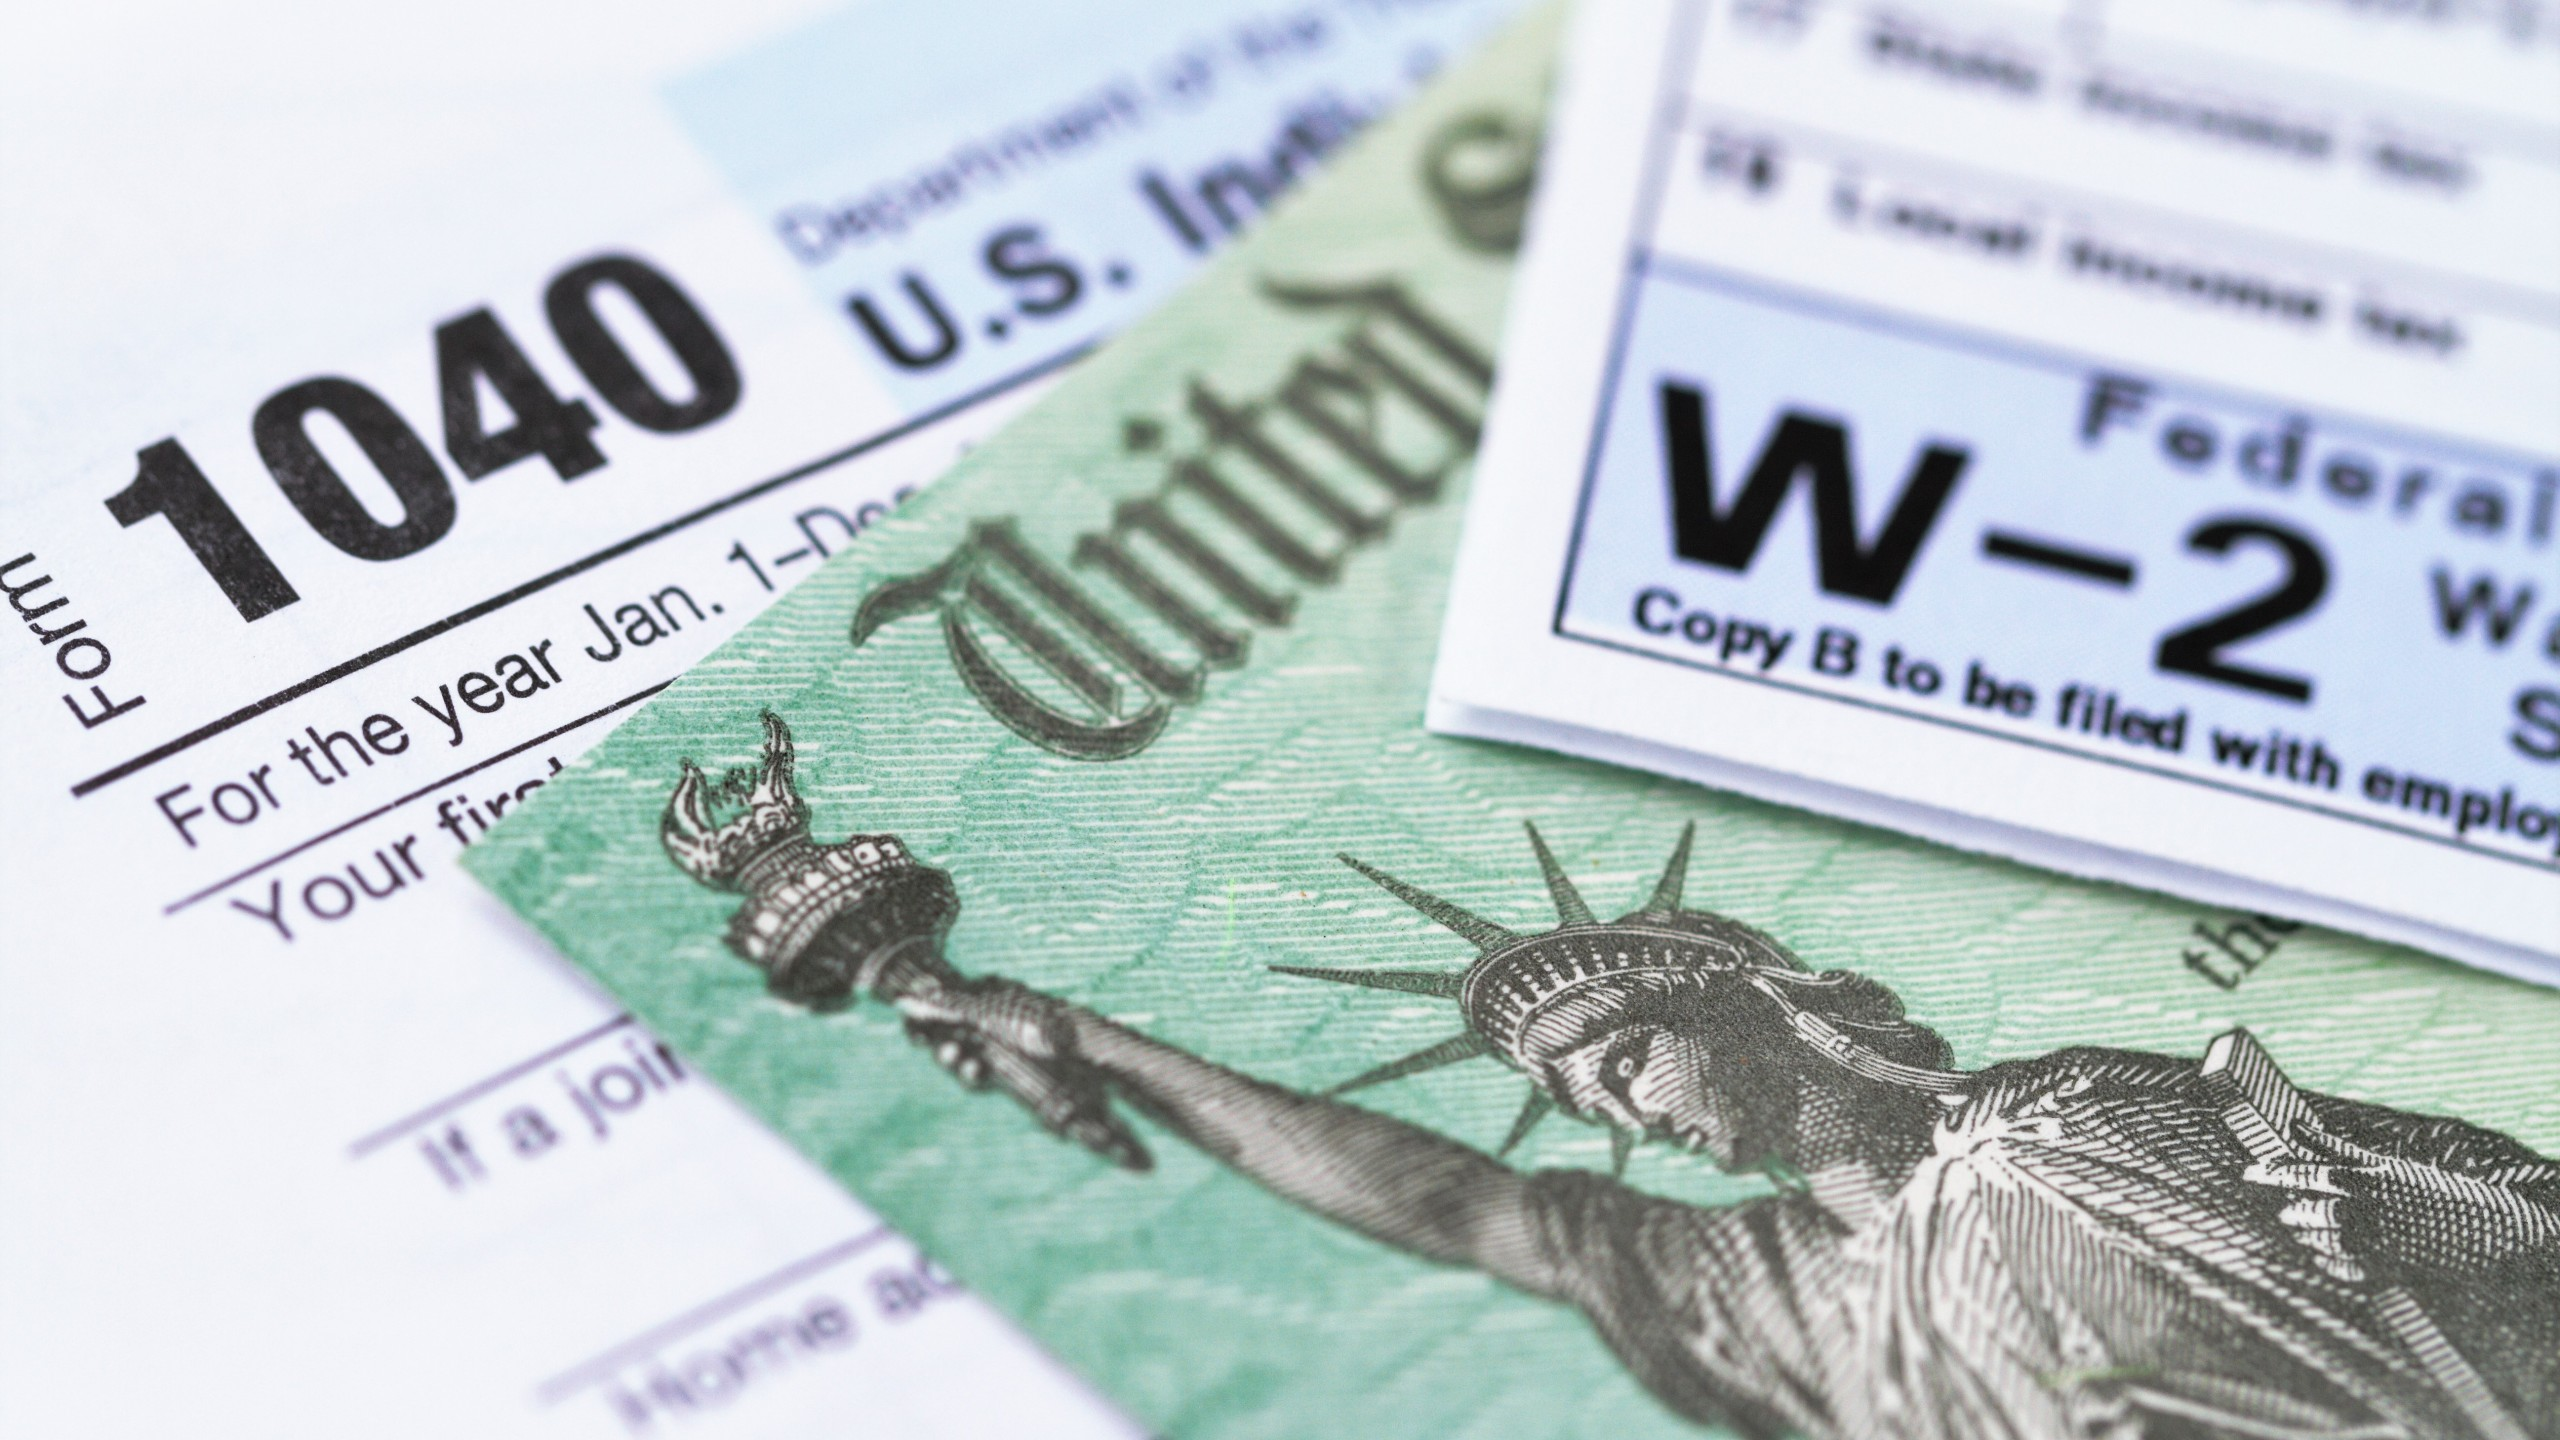 An IRS tax form with a tax refund check are seen in a file photo. (iStock/Getty Images Plus)